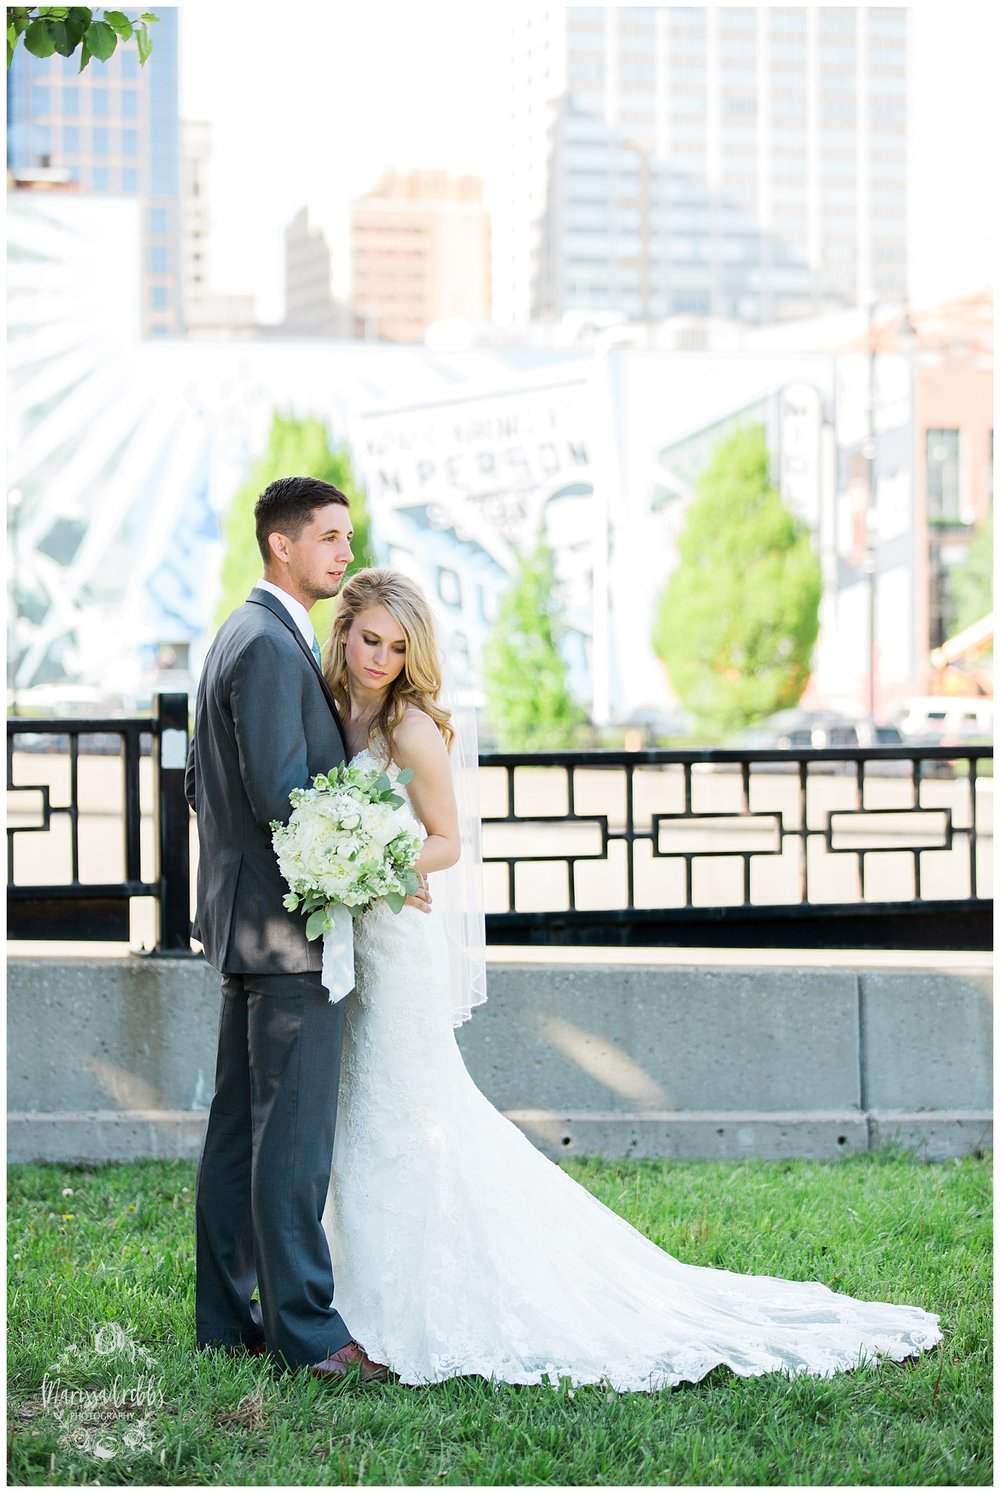 Maree & Corey | Berg Event Space Wedding | Kansas City Wedding Photos | KC Photographers | Marissa Cribbs Photography | KC Wedding Photographers_0914.jpg